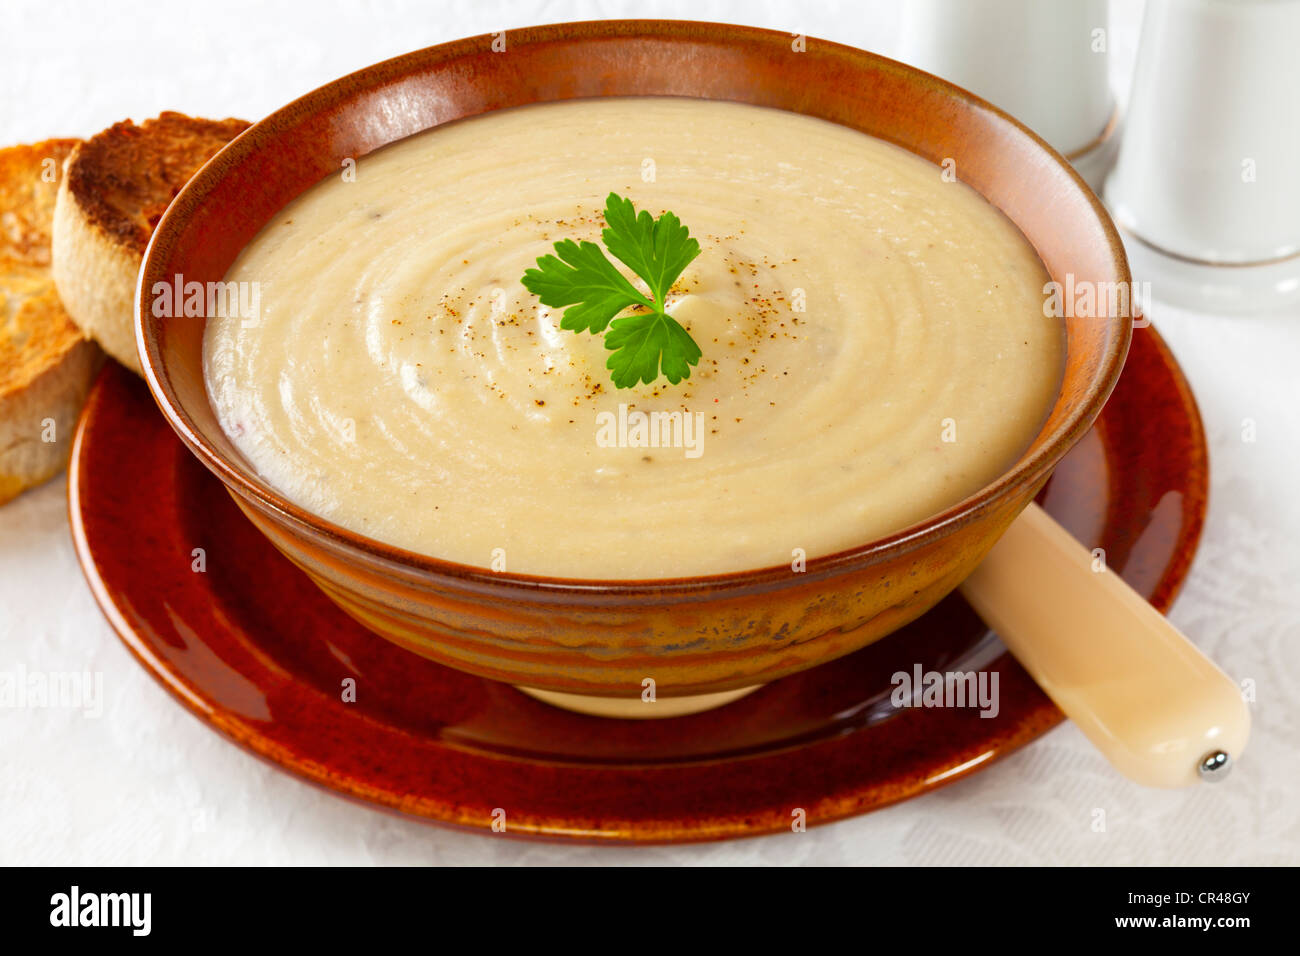 Homemade cauliflower and potato soup with a sprinkle of gourmet peppercorns. - Stock Image